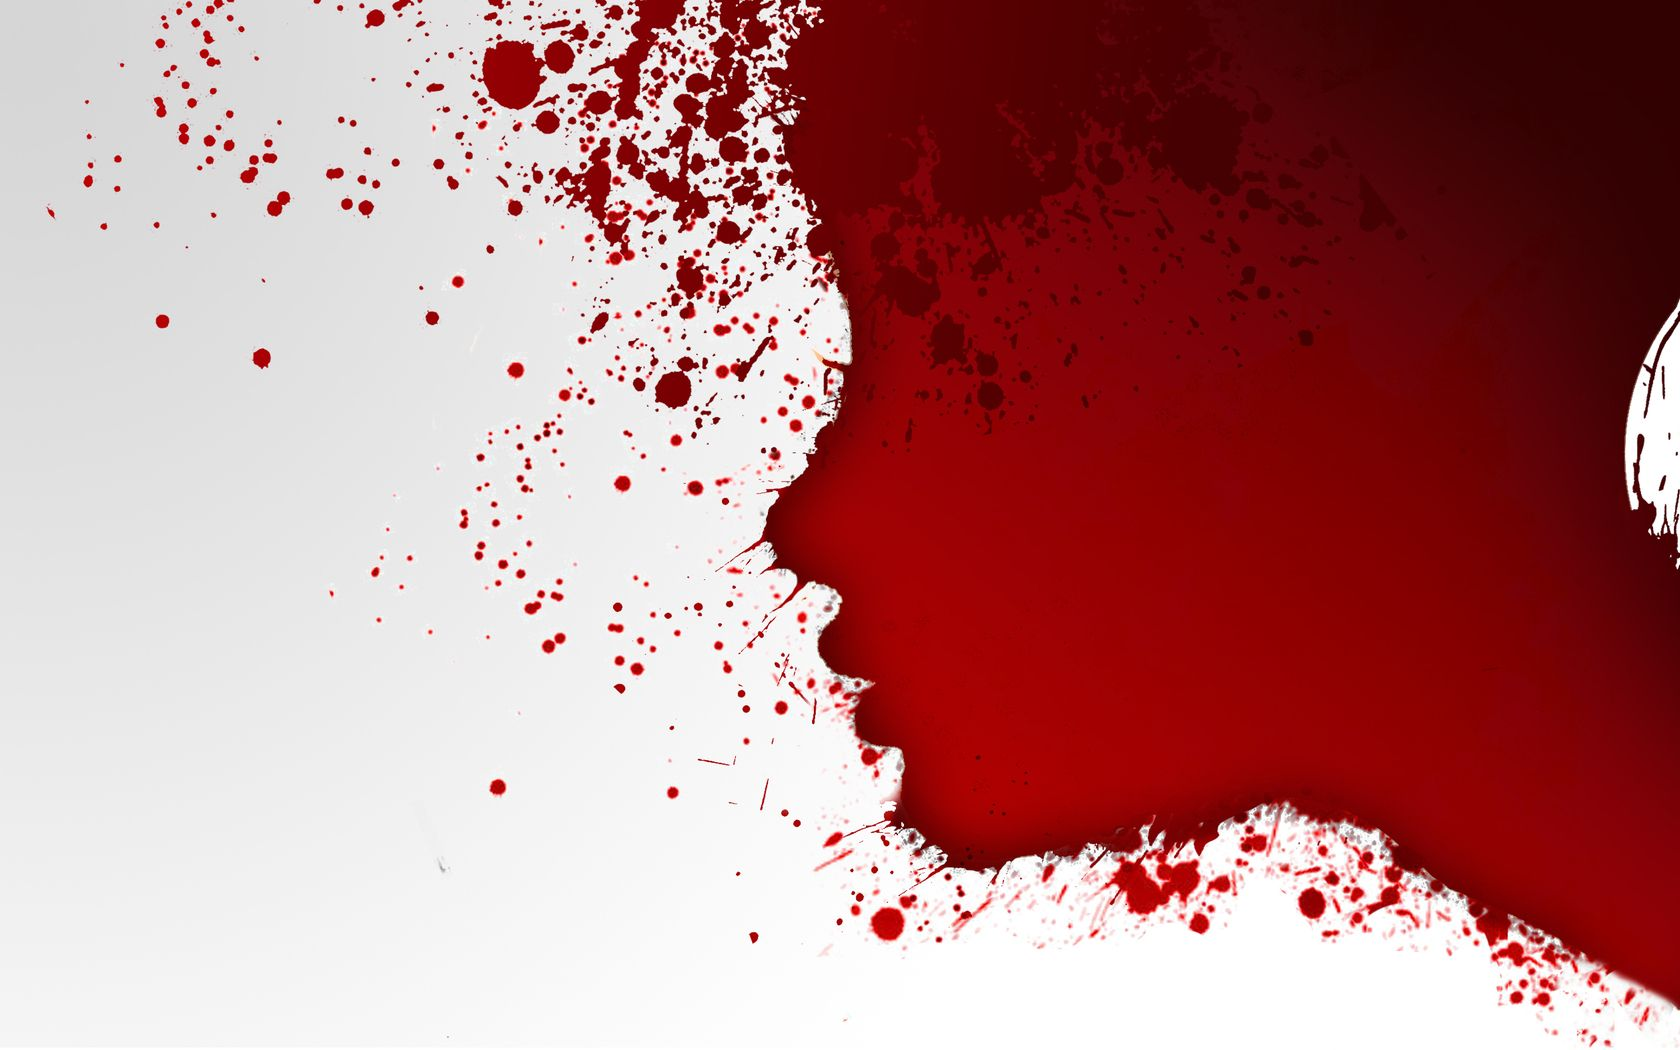 Wallpaper a blood wallpapers - Bloody Backgrounds Wallpaper 1280 959 Bloody Wallpapers 38 Wallpapers Adorable Wallpapers